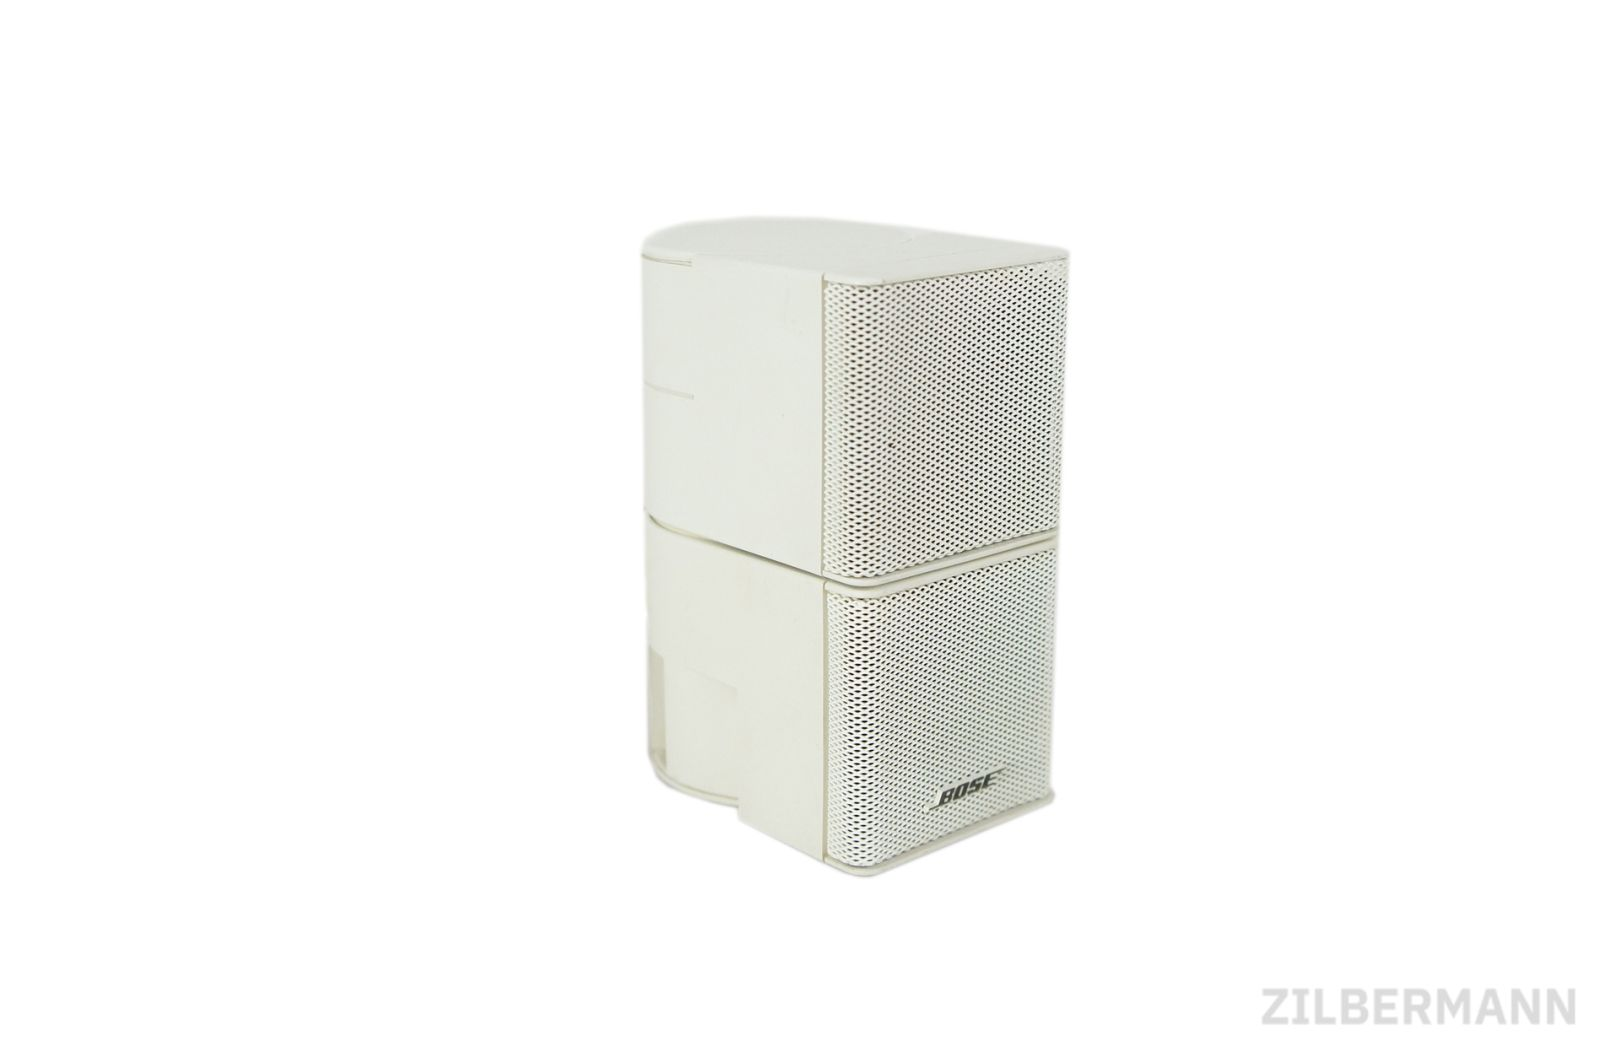 Bose_Jewel_Cube_Box_Satellit_mit_Adapter_Weiss